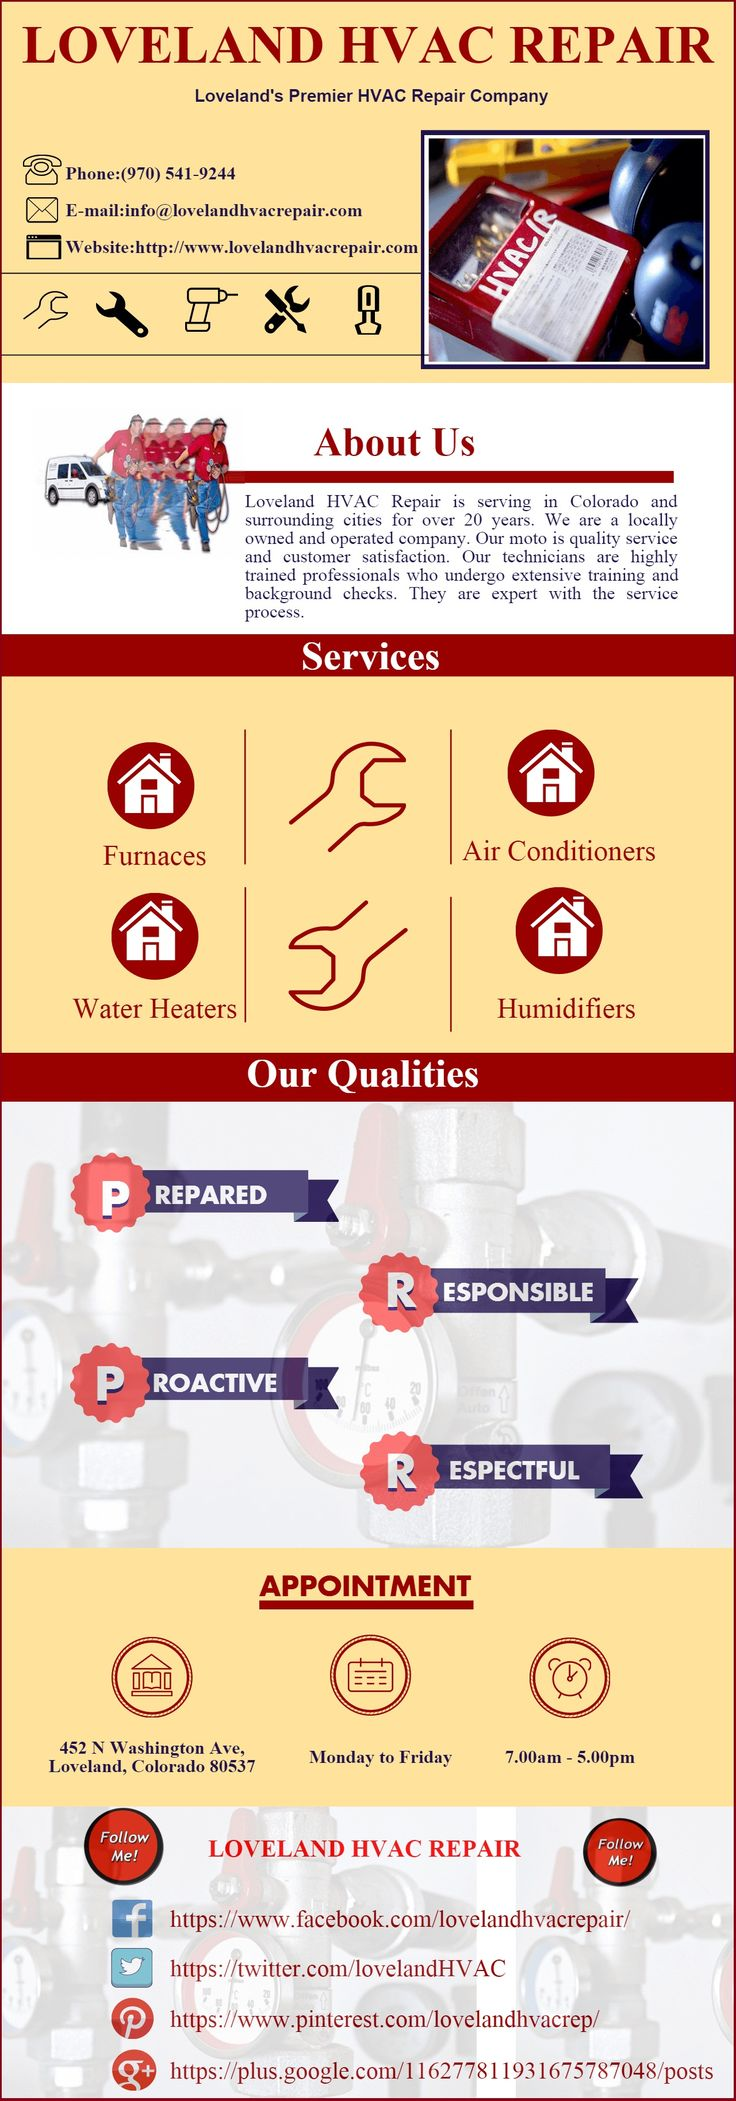 Average cost to replace a furnace - Loveland Hvac Repair Consider Your Furnaces Air Conditioners Humidifiers And Other Hvac System